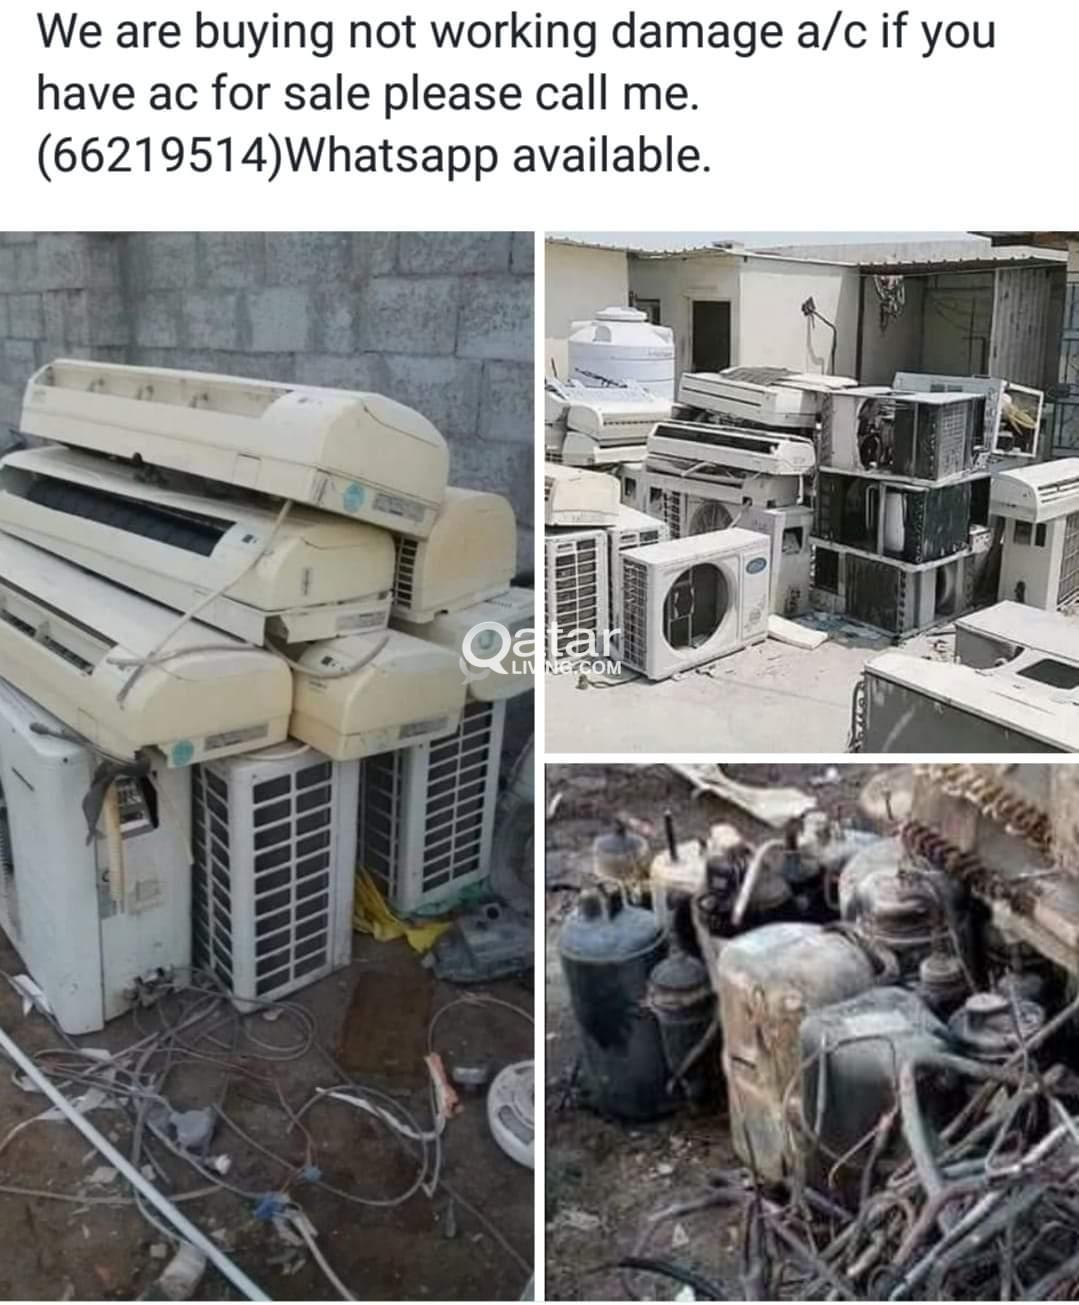 If you have damage ac just call me .we are buy not